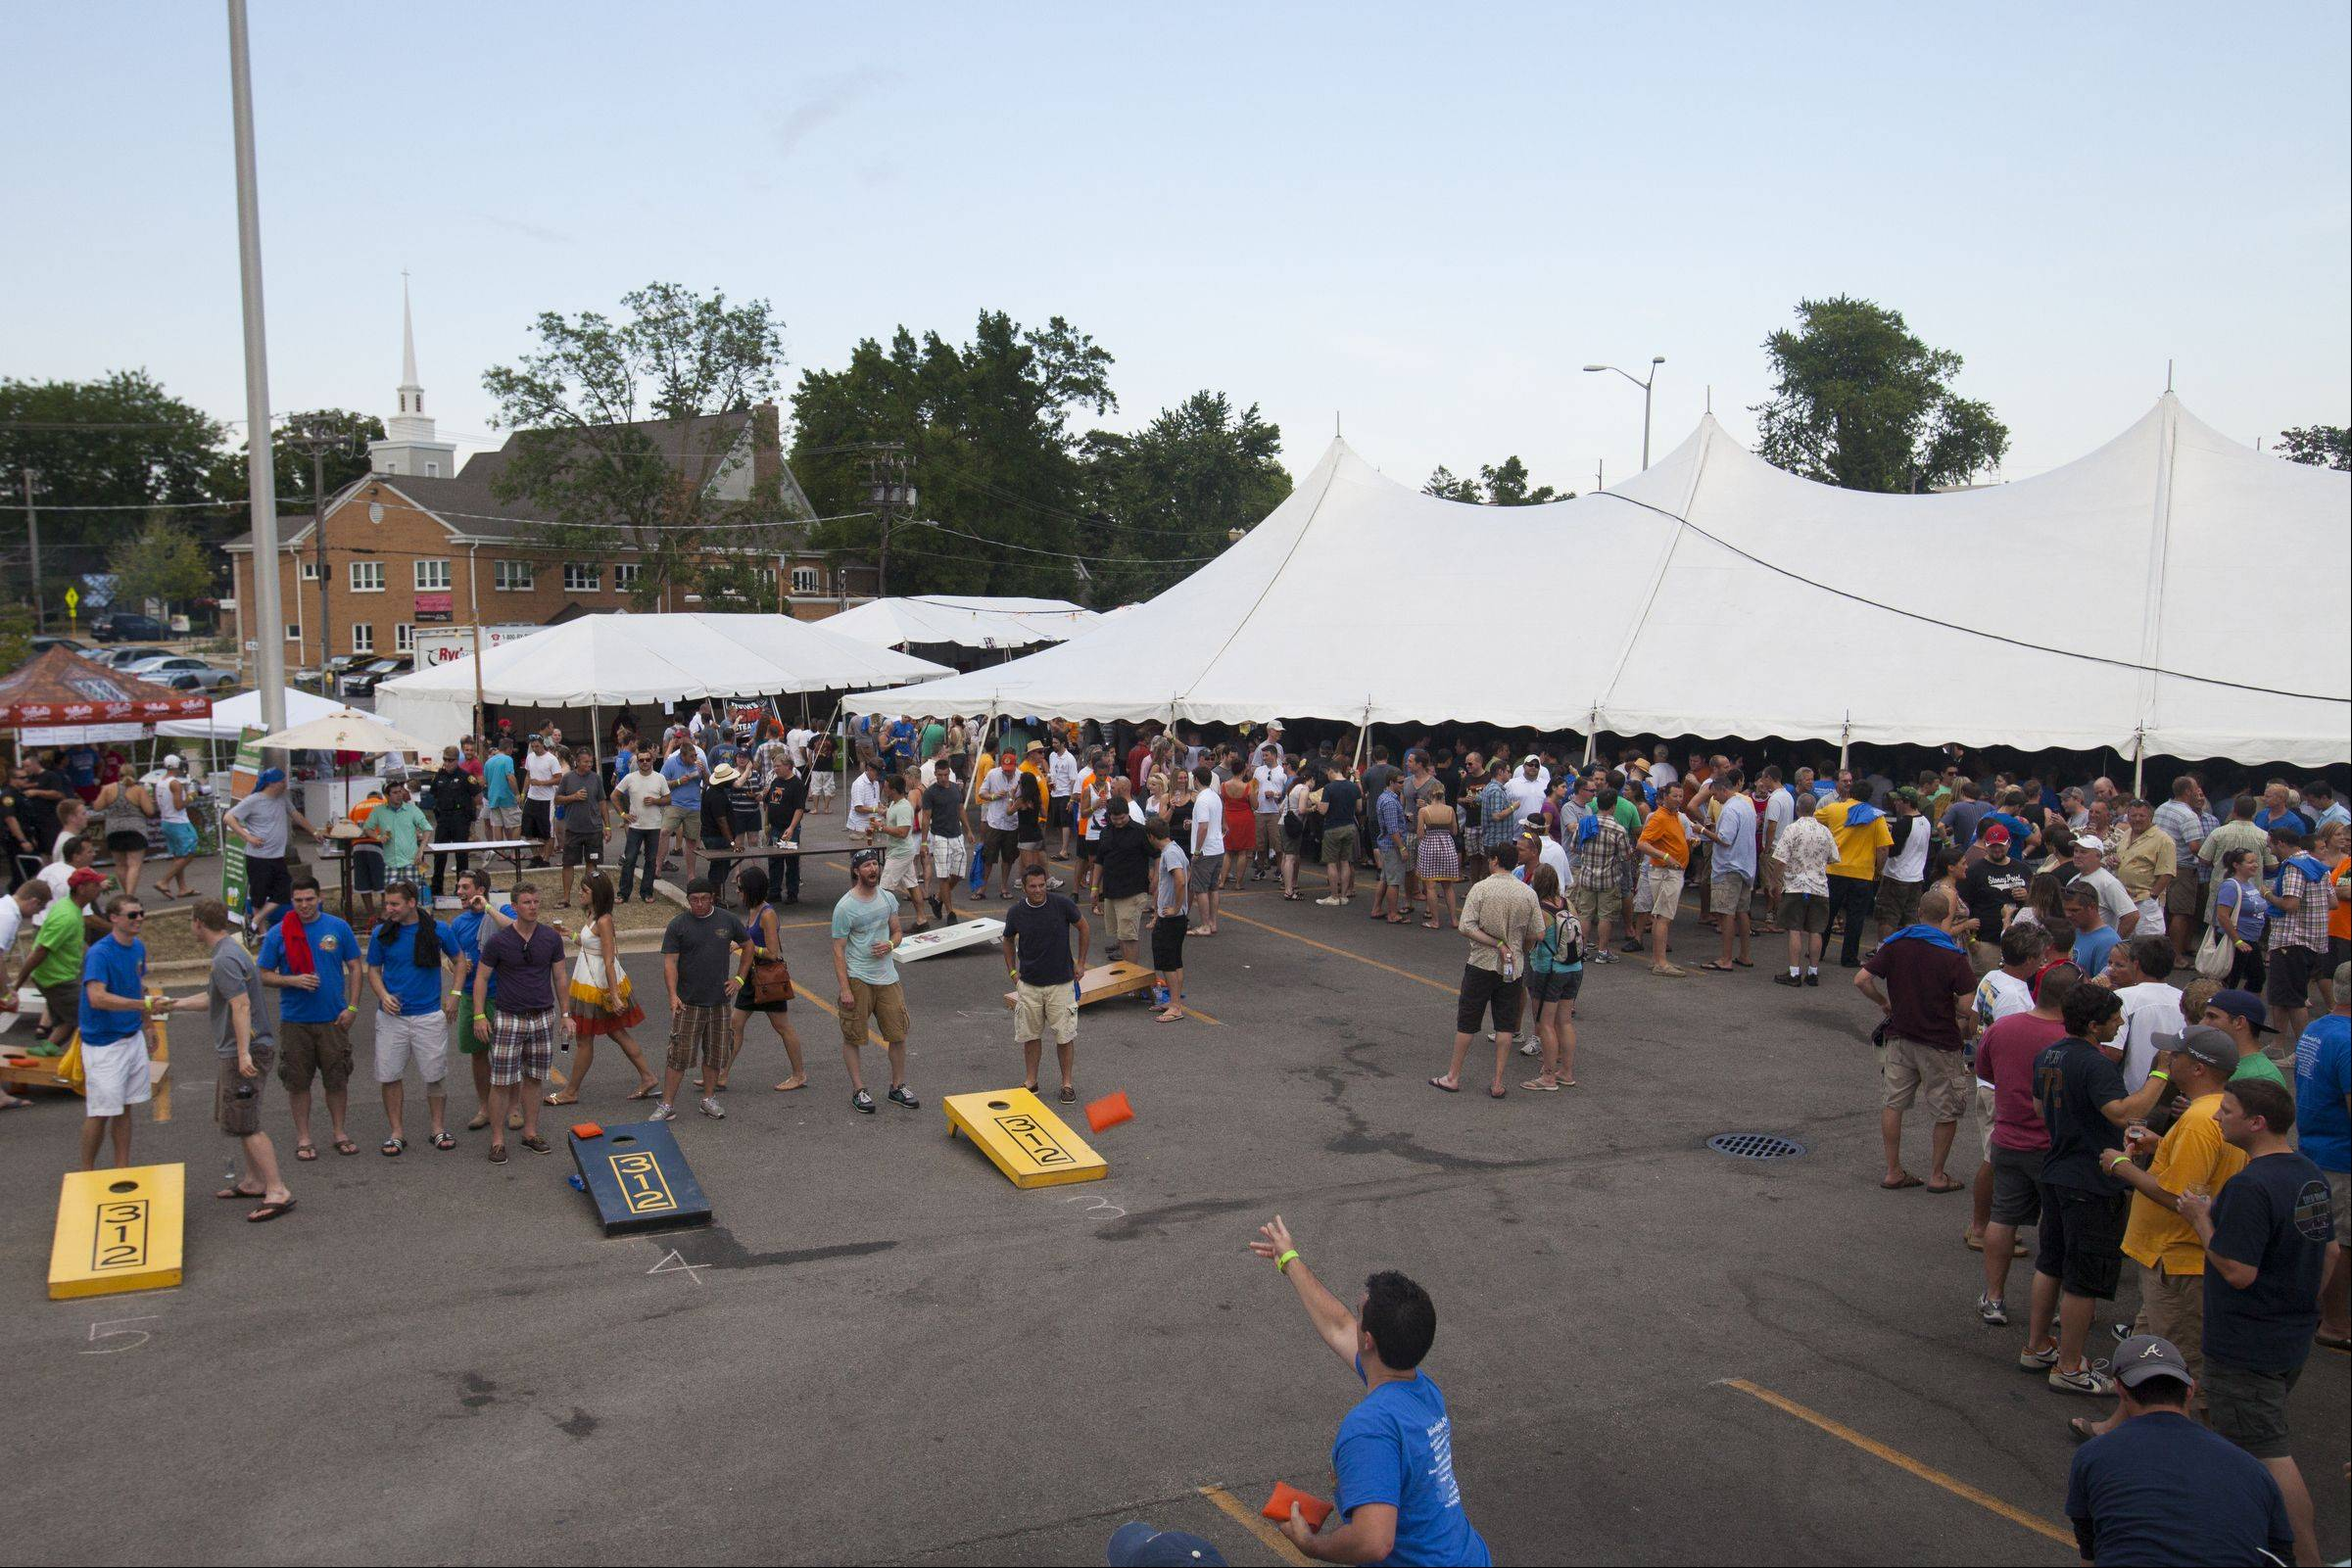 Many taste as others play at last year's Barrington Brew Fest. The 10th annual Barrington Brew Fest is scheduled for July 13 and will include regional craft breweries, live music, tasty food and a bean bag tournament.